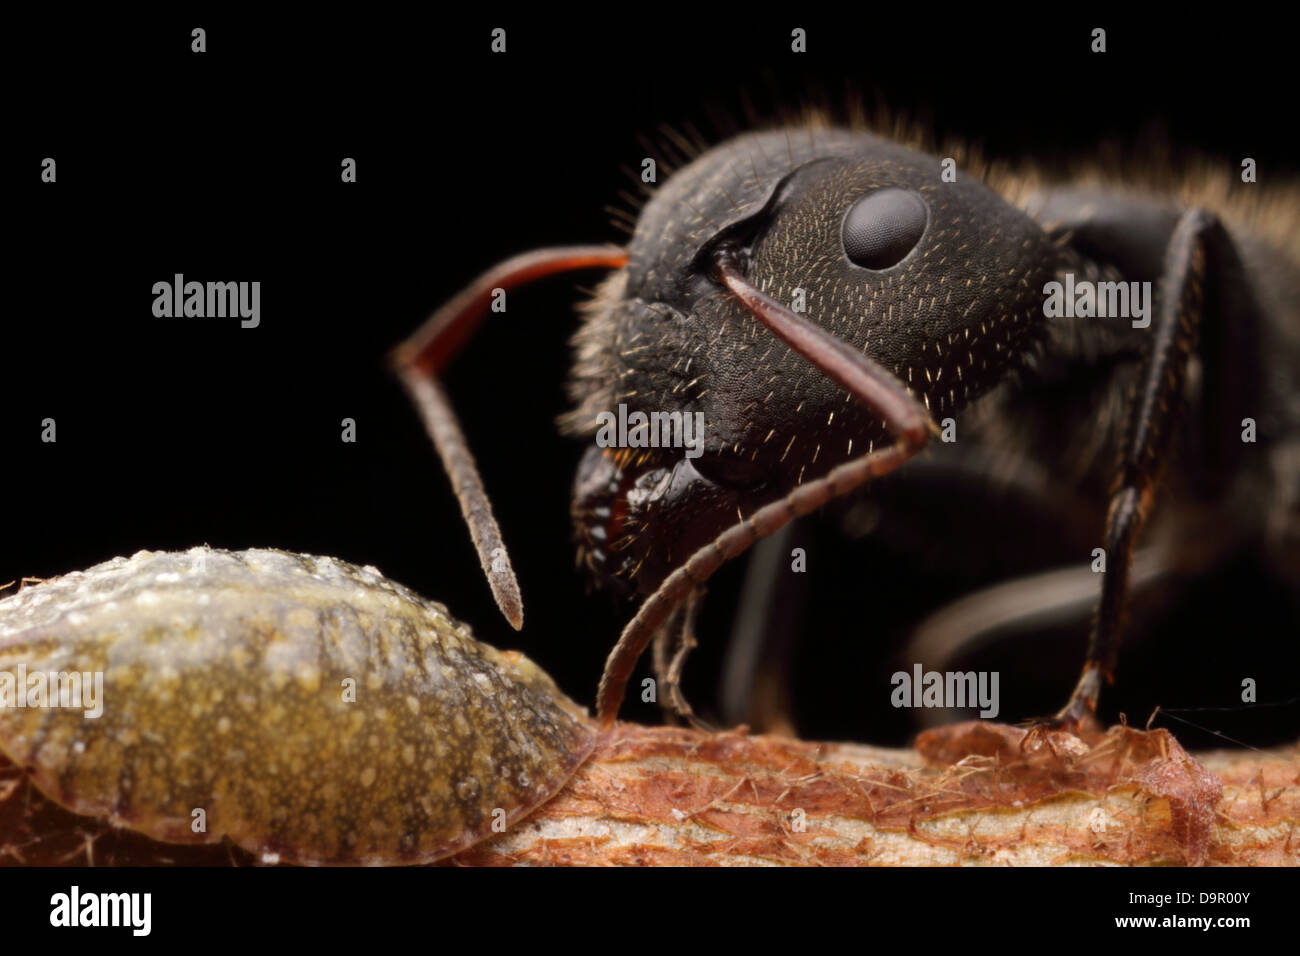 Big ant aking from honeydew and protecting the scale insect - Stock Image